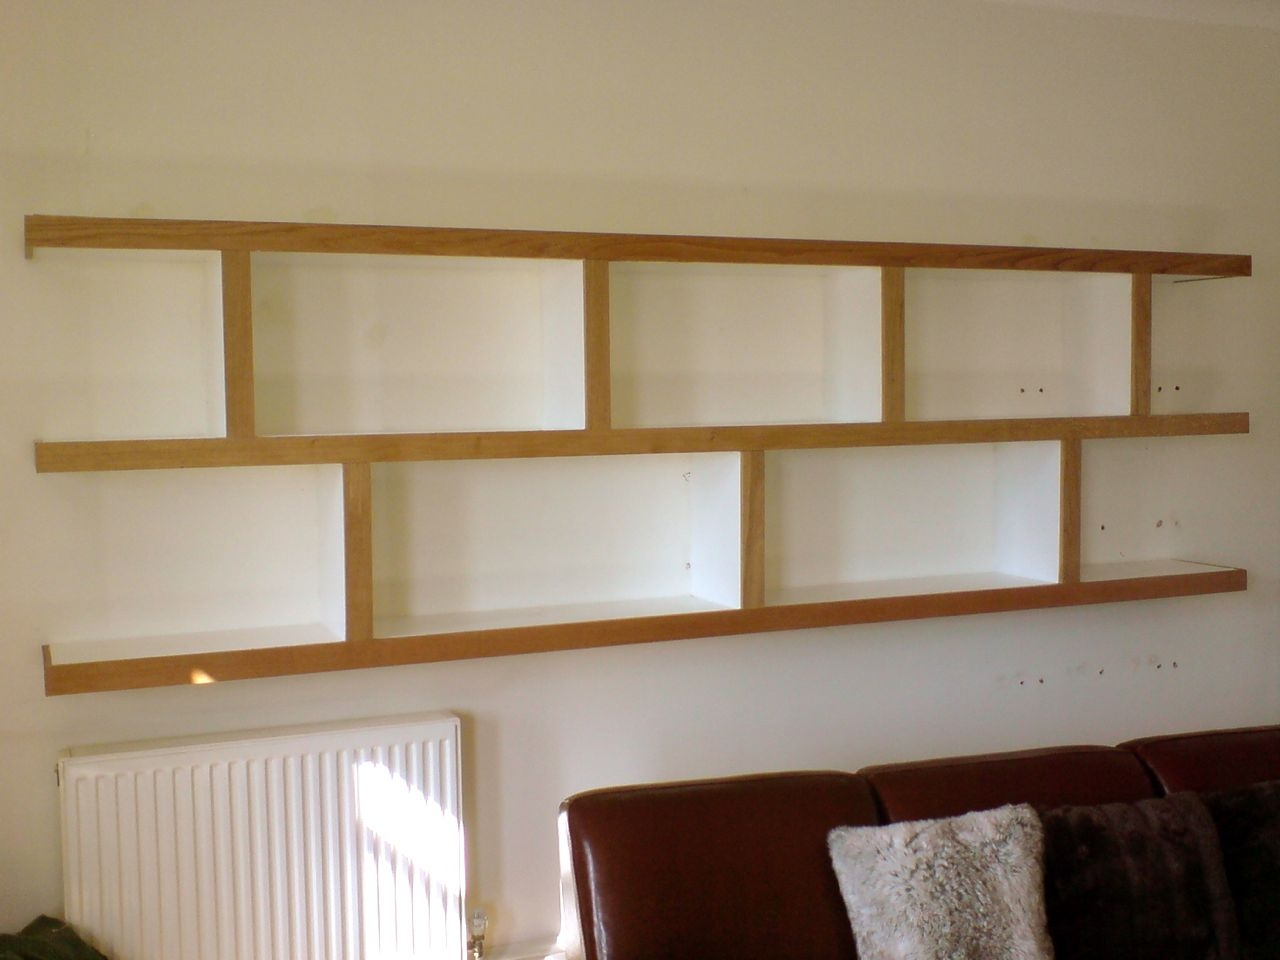 Best Sleek Wall Shelving Units For Bedrooms 1065 Intended For Wall Shelving Units (View 7 of 15)